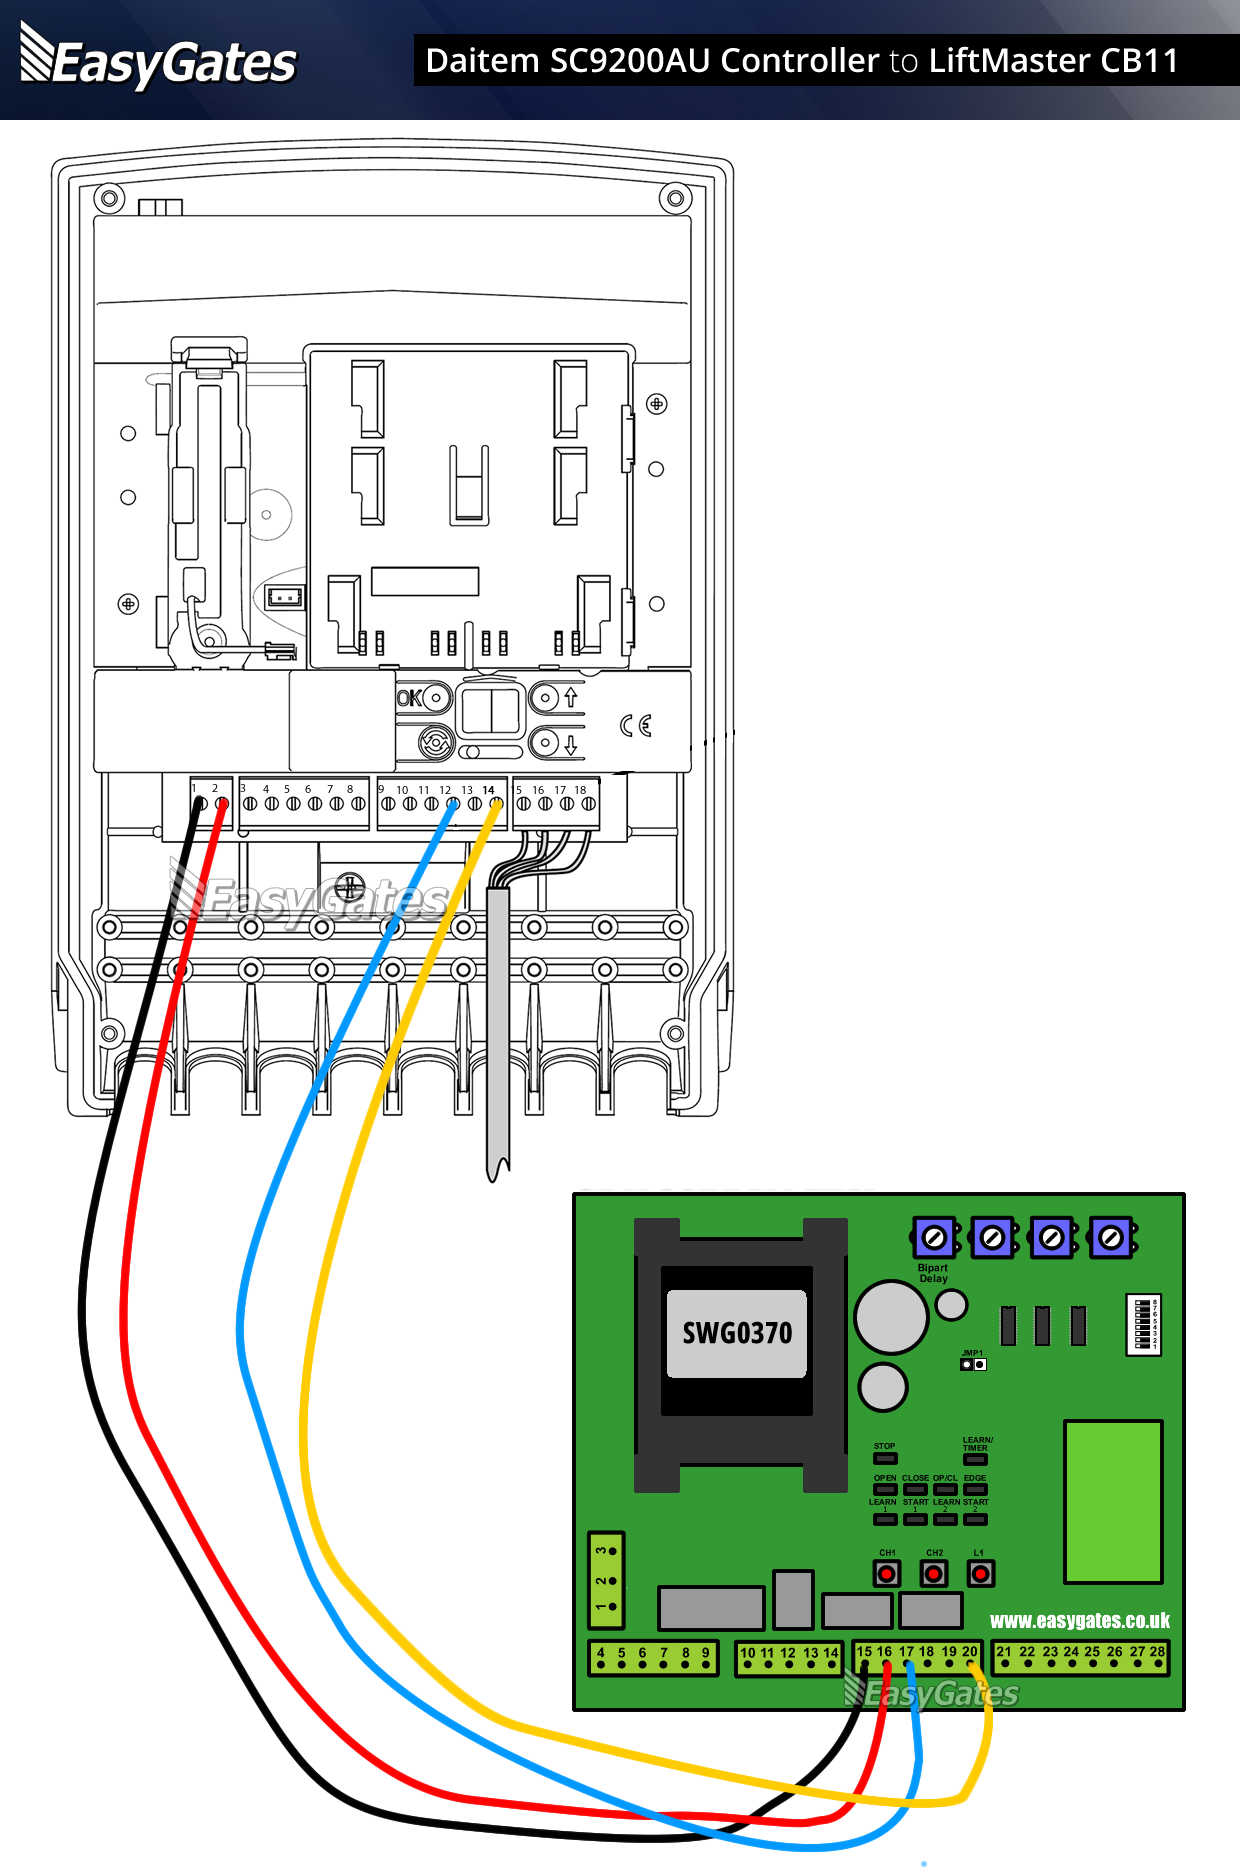 Daitem SC200AU to CB11 Panel flattened chamberlain garage door wiring diagram wirdig readingrat net liftmaster garage door opener wiring schematic at crackthecode.co